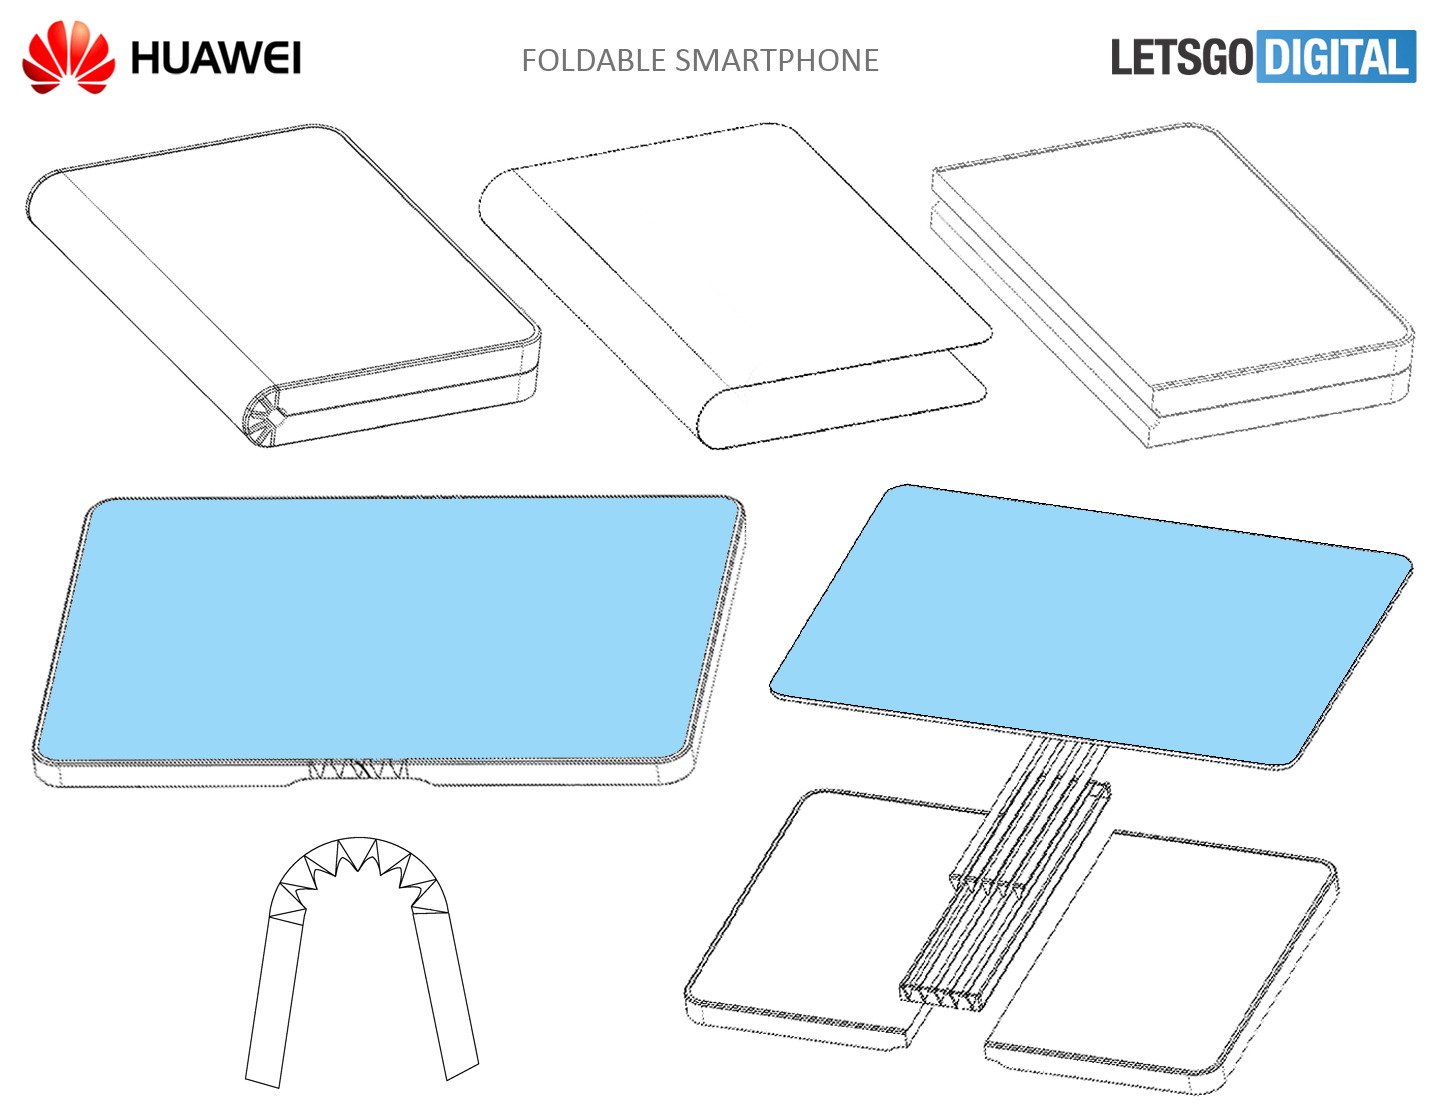 Huawei smartphone flexibel display